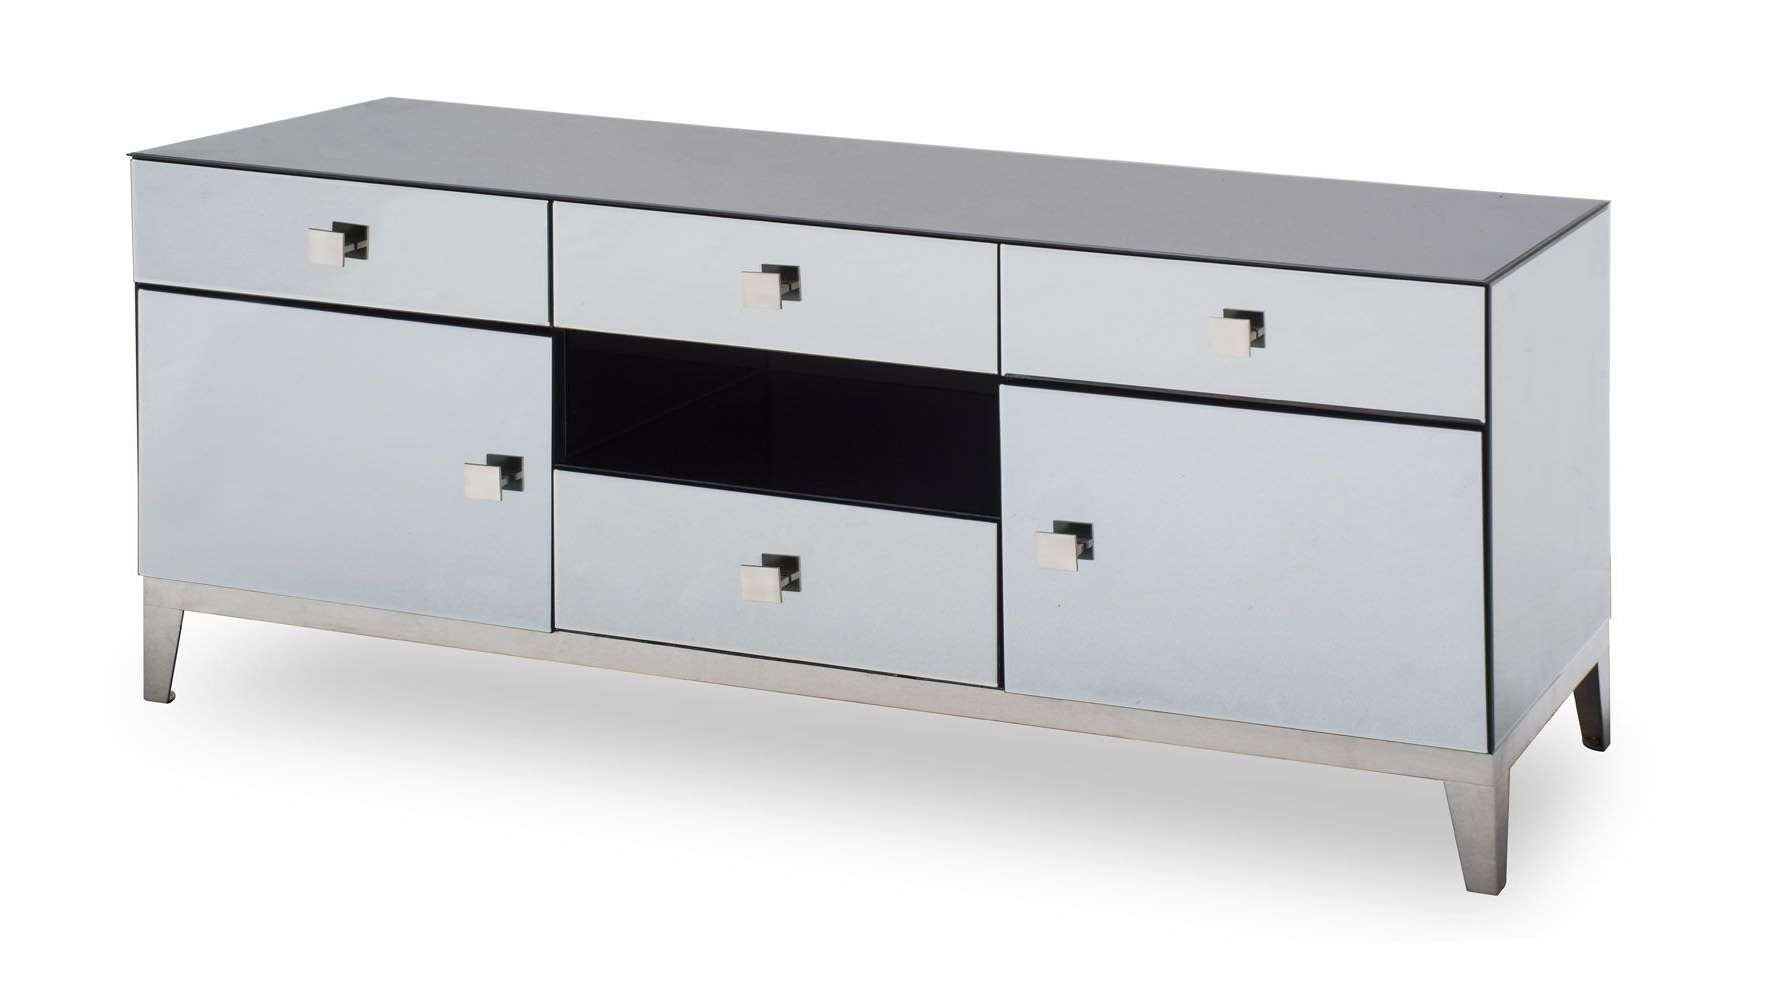 Modern Grey Mirrored Glass Berlin Tv Stand | Zuri Furniture Pertaining To Glass Tv Cabinets (View 8 of 20)